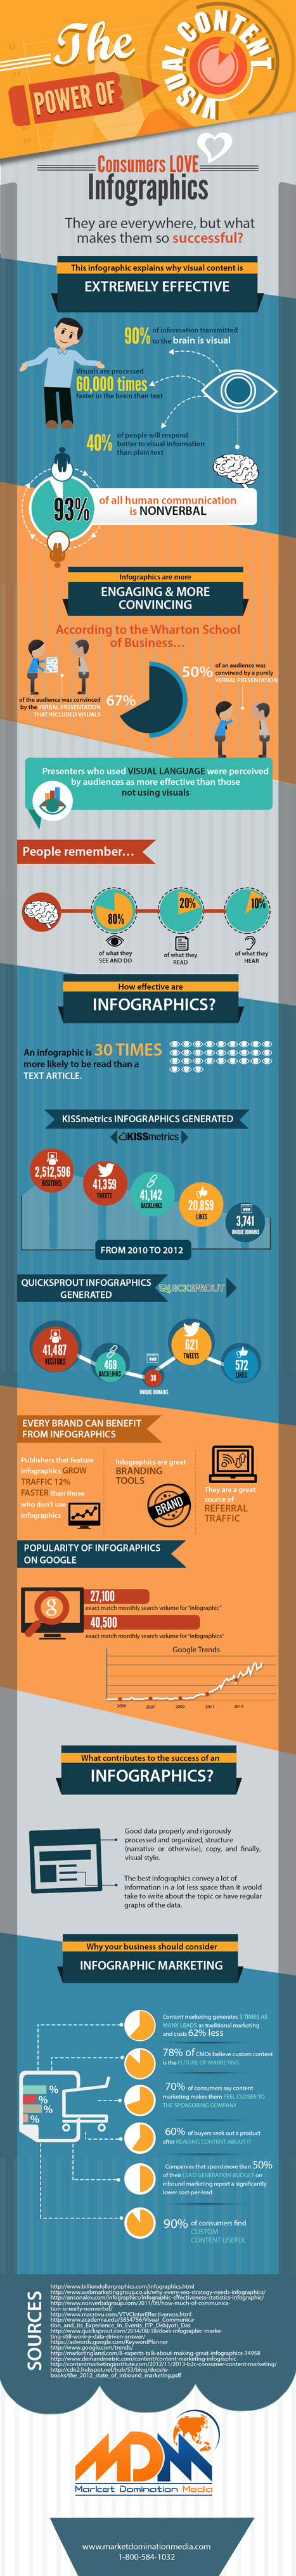 Why Are Infographics So Darn Effective? #Infographic   MarketingHits   Scoop.it